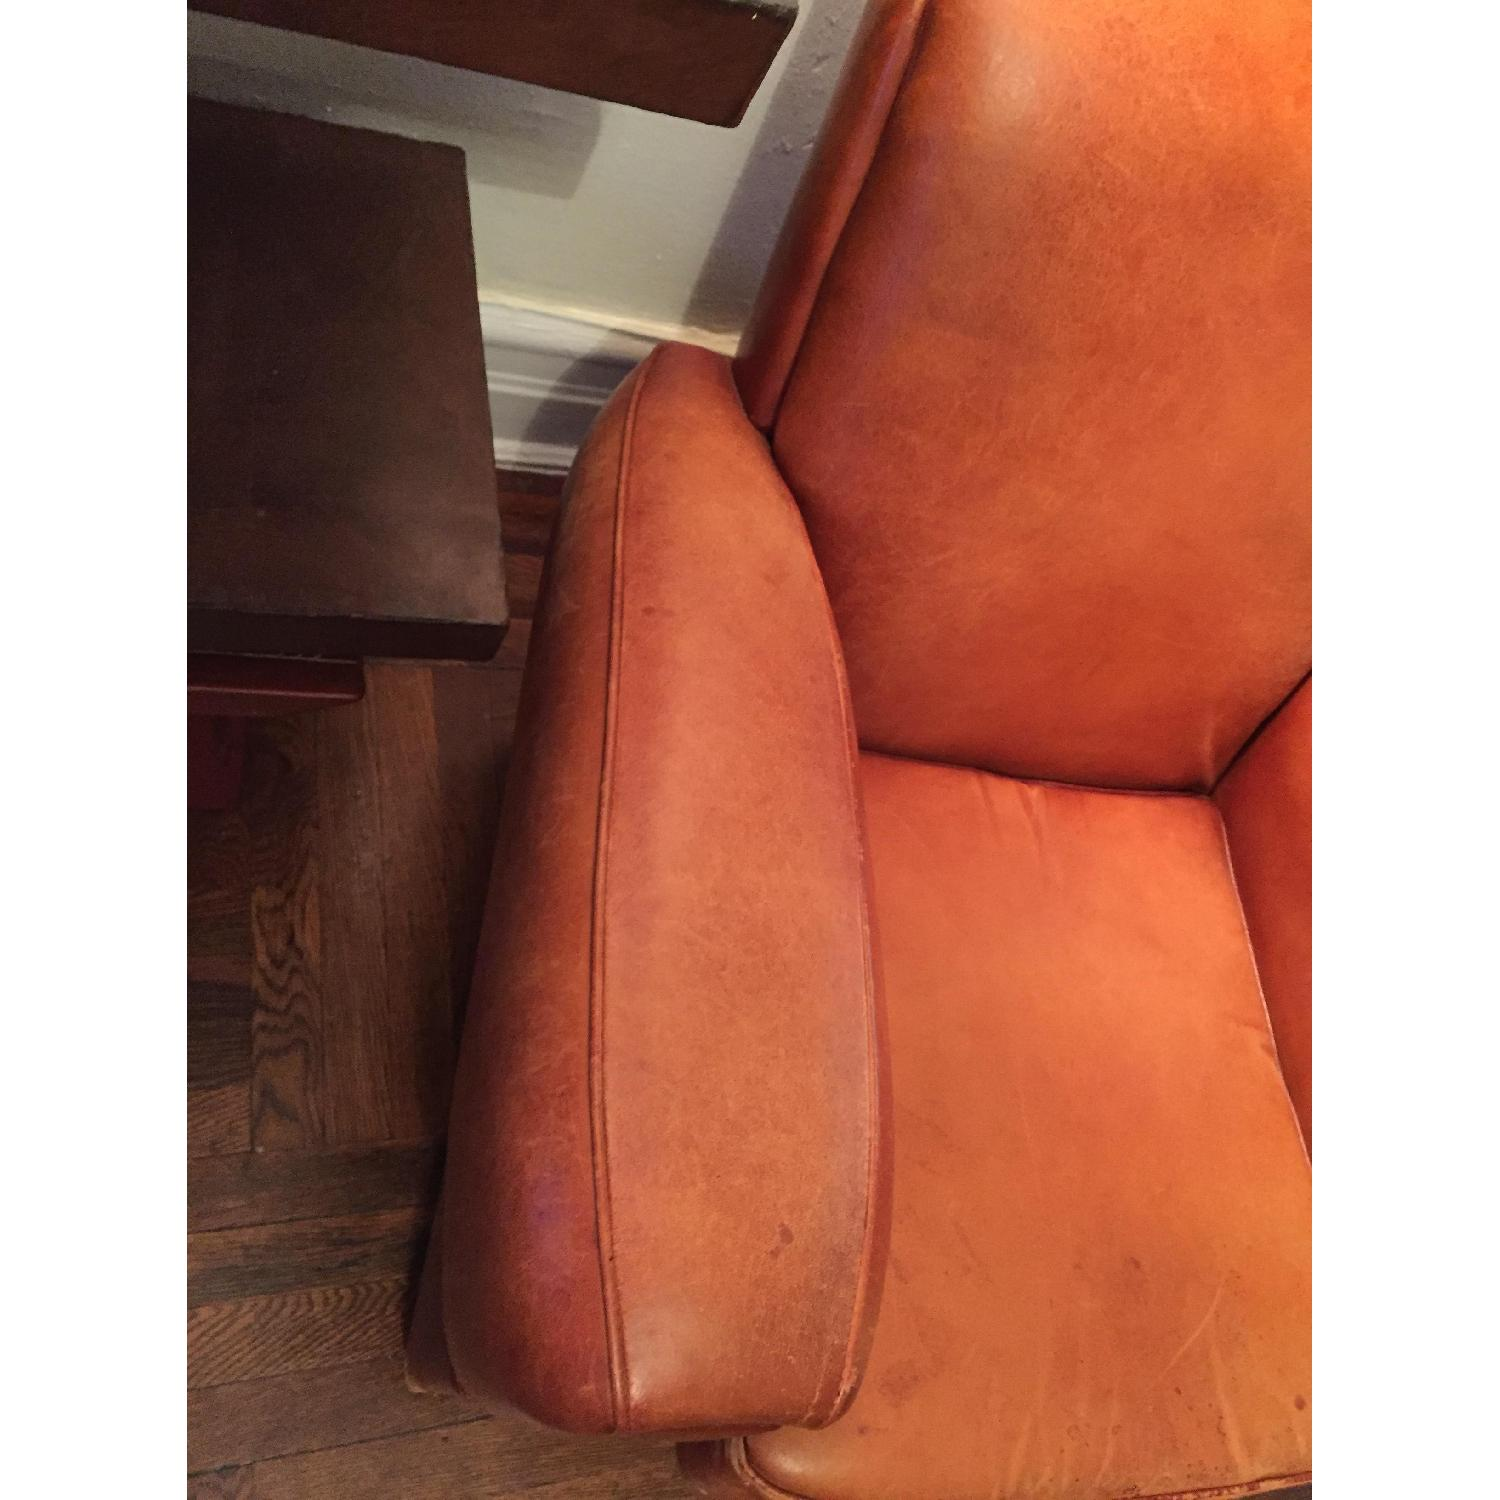 Portico Leather Club Chair - image-13